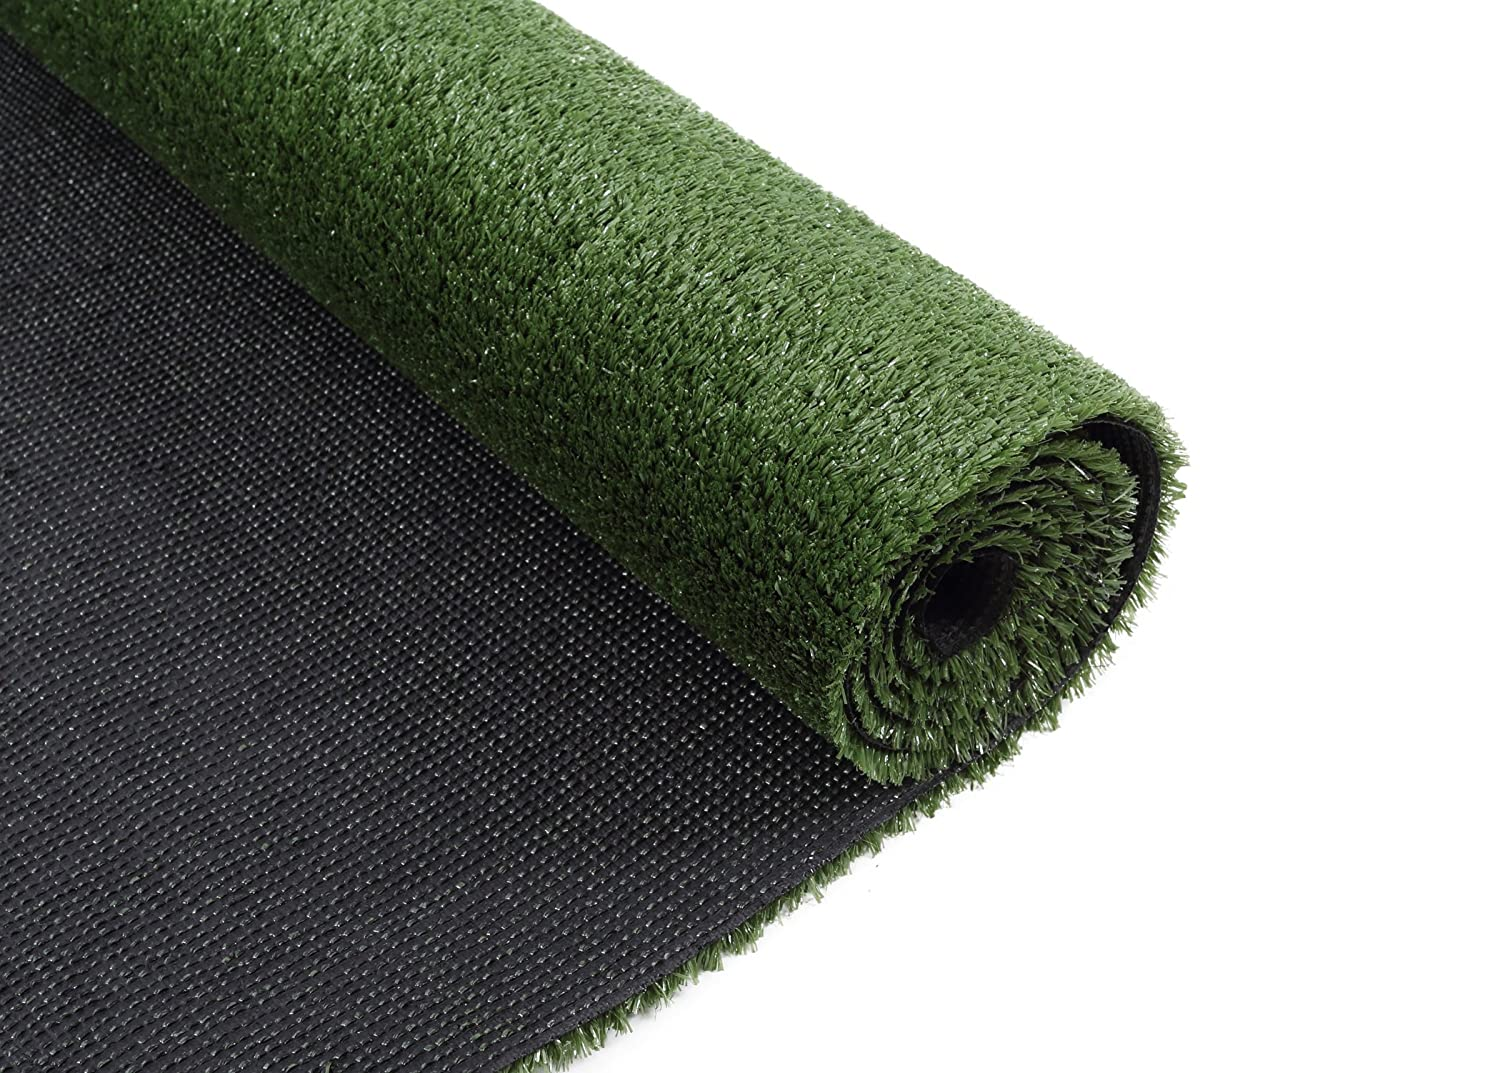 "VerdeCasa Realistic Artificial Grass Rug Indoor/Outdoor Decorative Synthetic Grass Turf 0.39"" Pile Height 4"